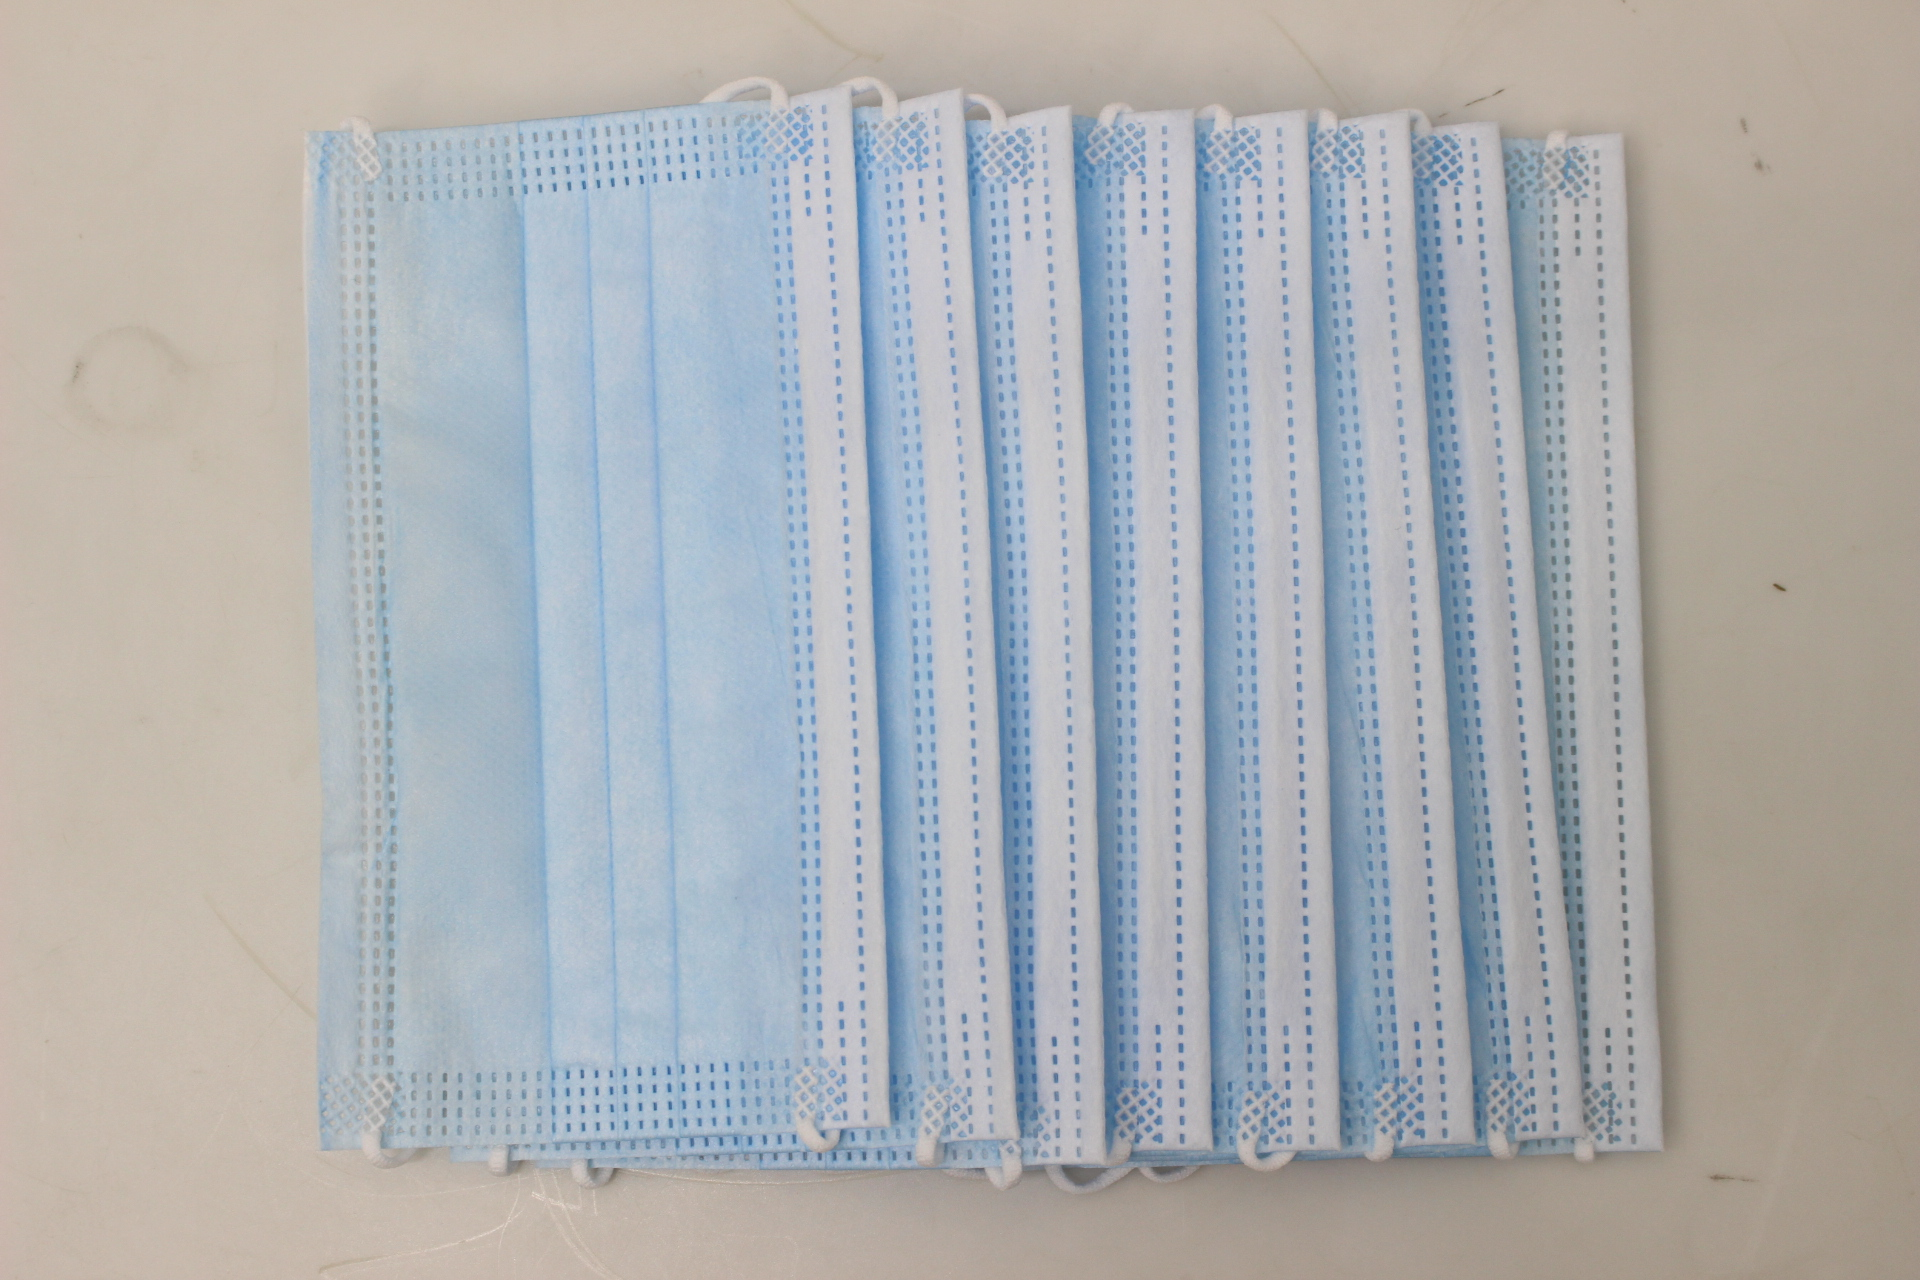 Medical Filter Melt-blown Fabric Protective Disposable Face Mask CE Featured Image